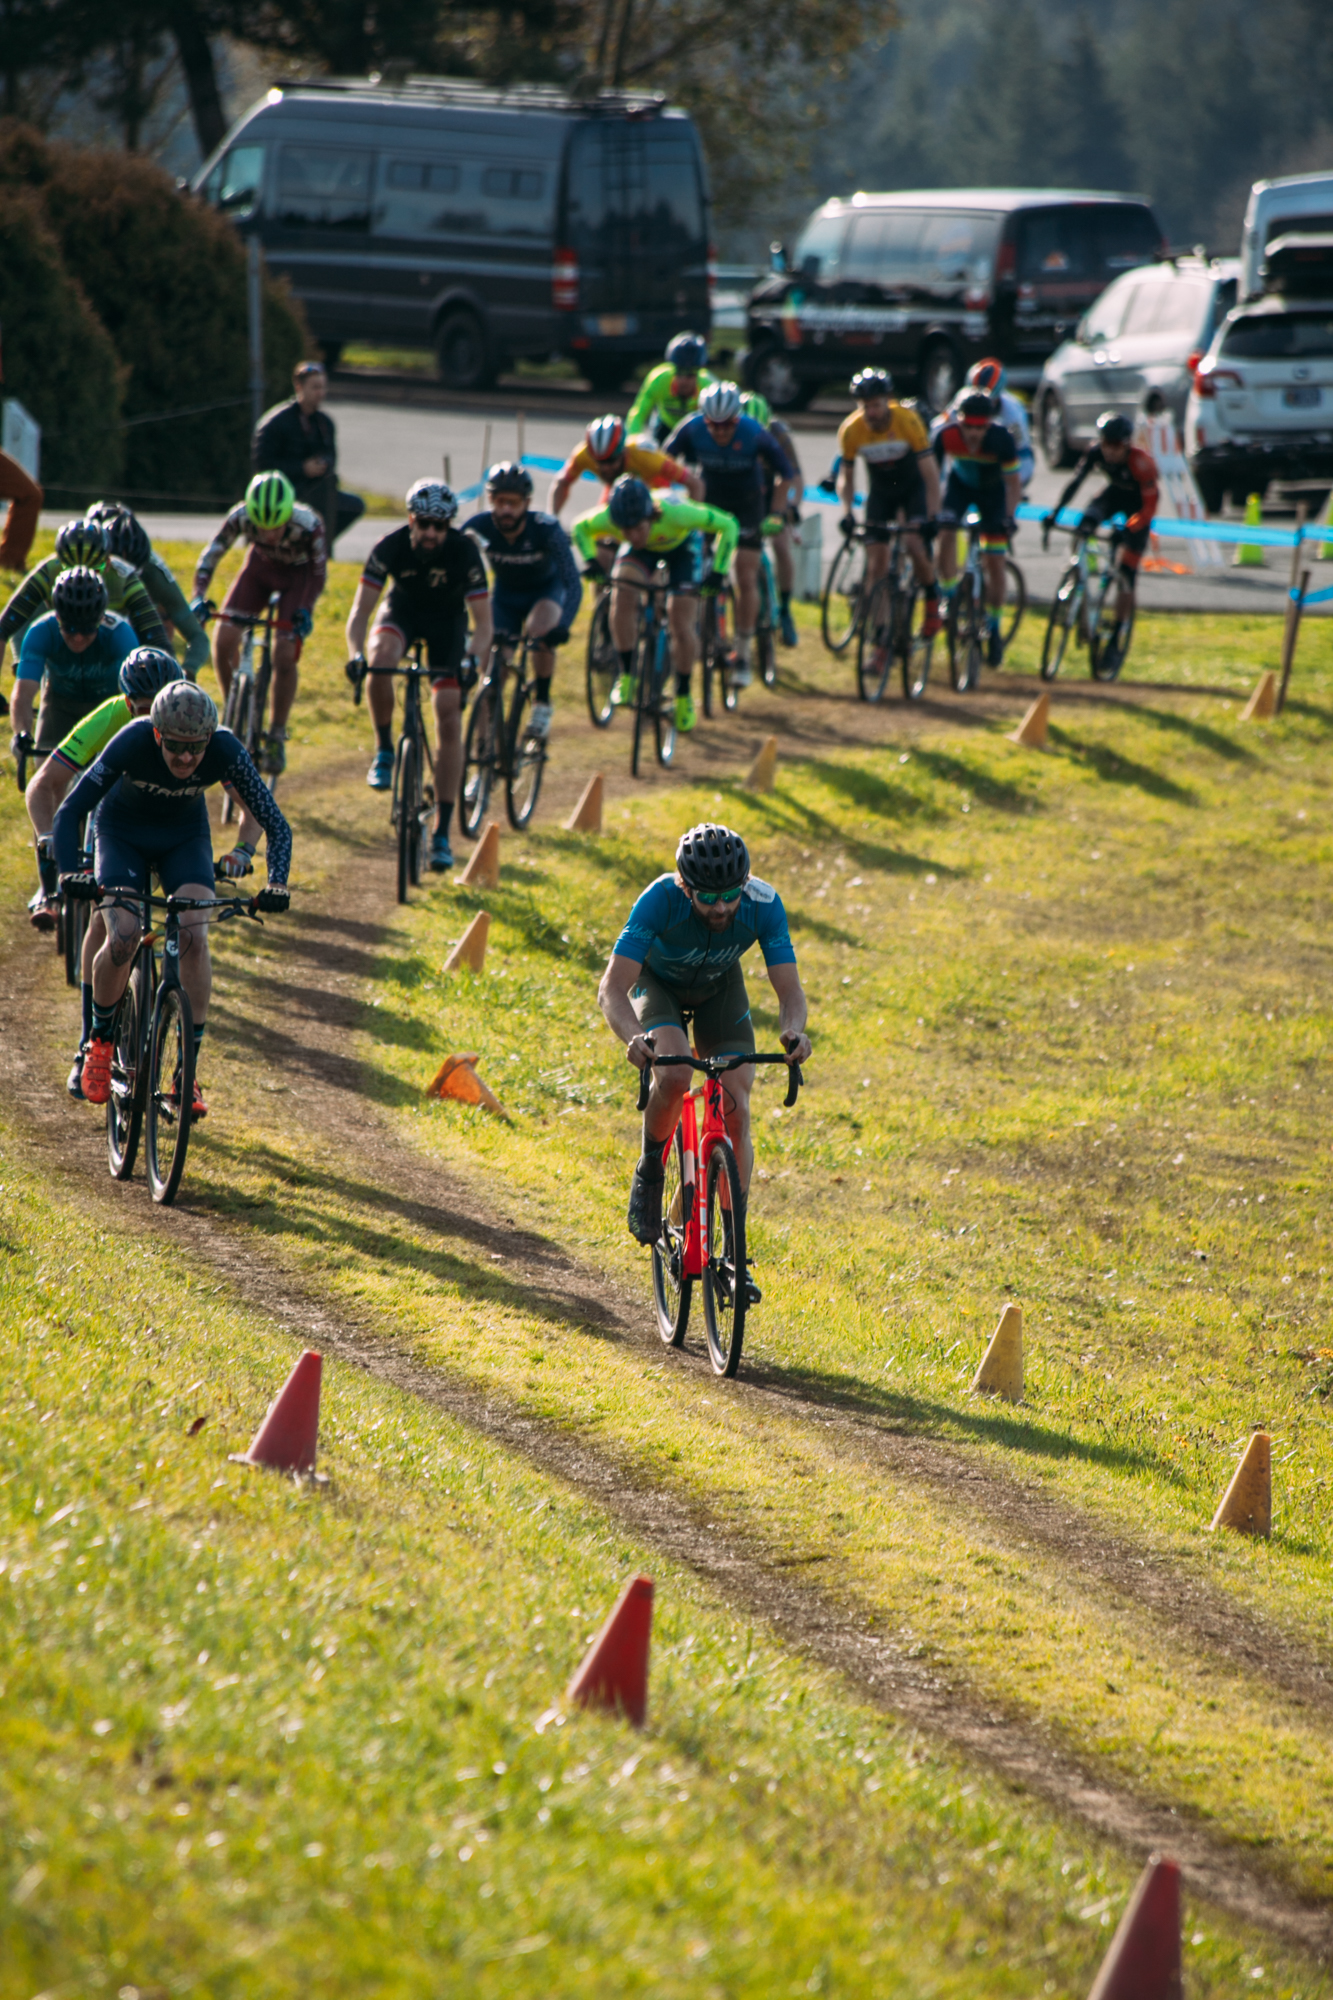 Cyclocross18_CCCX_RainierHS-42-mettlecycling.jpg